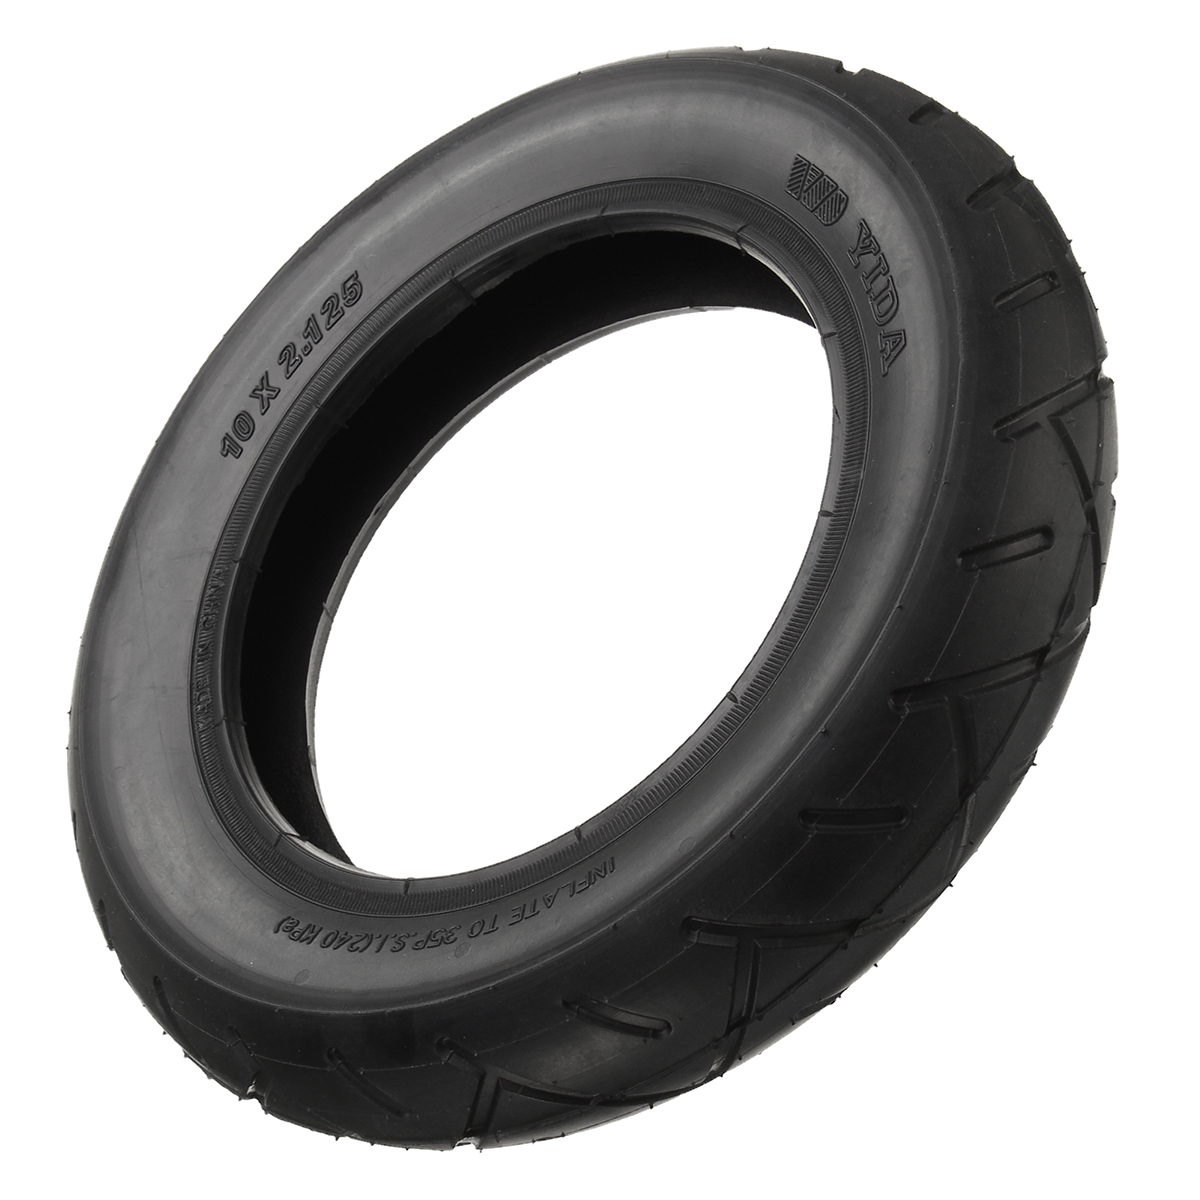 10inch X 2.125inch Hot For Hoverboard Tire Inner Tube Self Balancing Electric Scooter